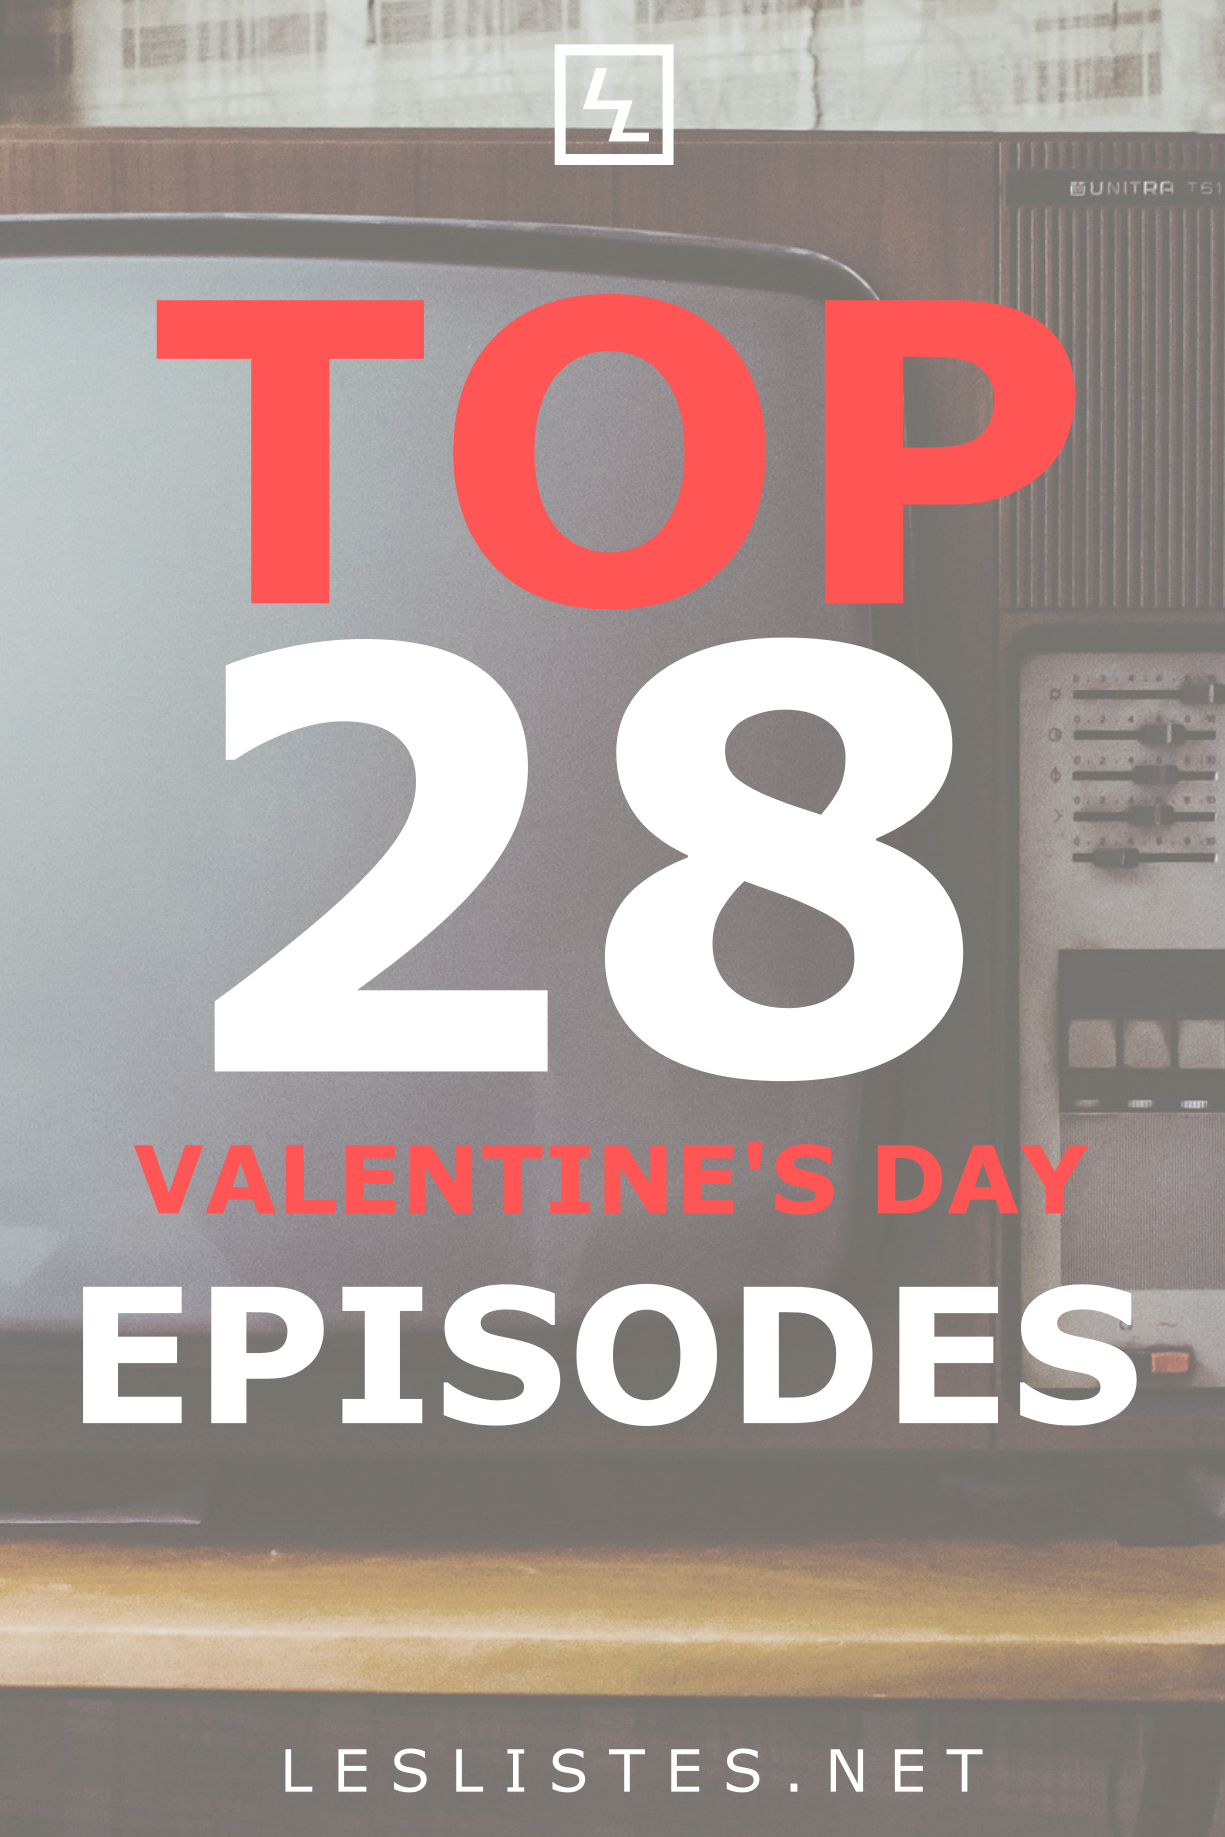 Valentine S Day Can Be Pretty Stressful One Way To Help Is To Watch Tv Check Out The Top 28 Valentines Day Episod Silly Love Songs Tv Shows Favorite Tv Shows